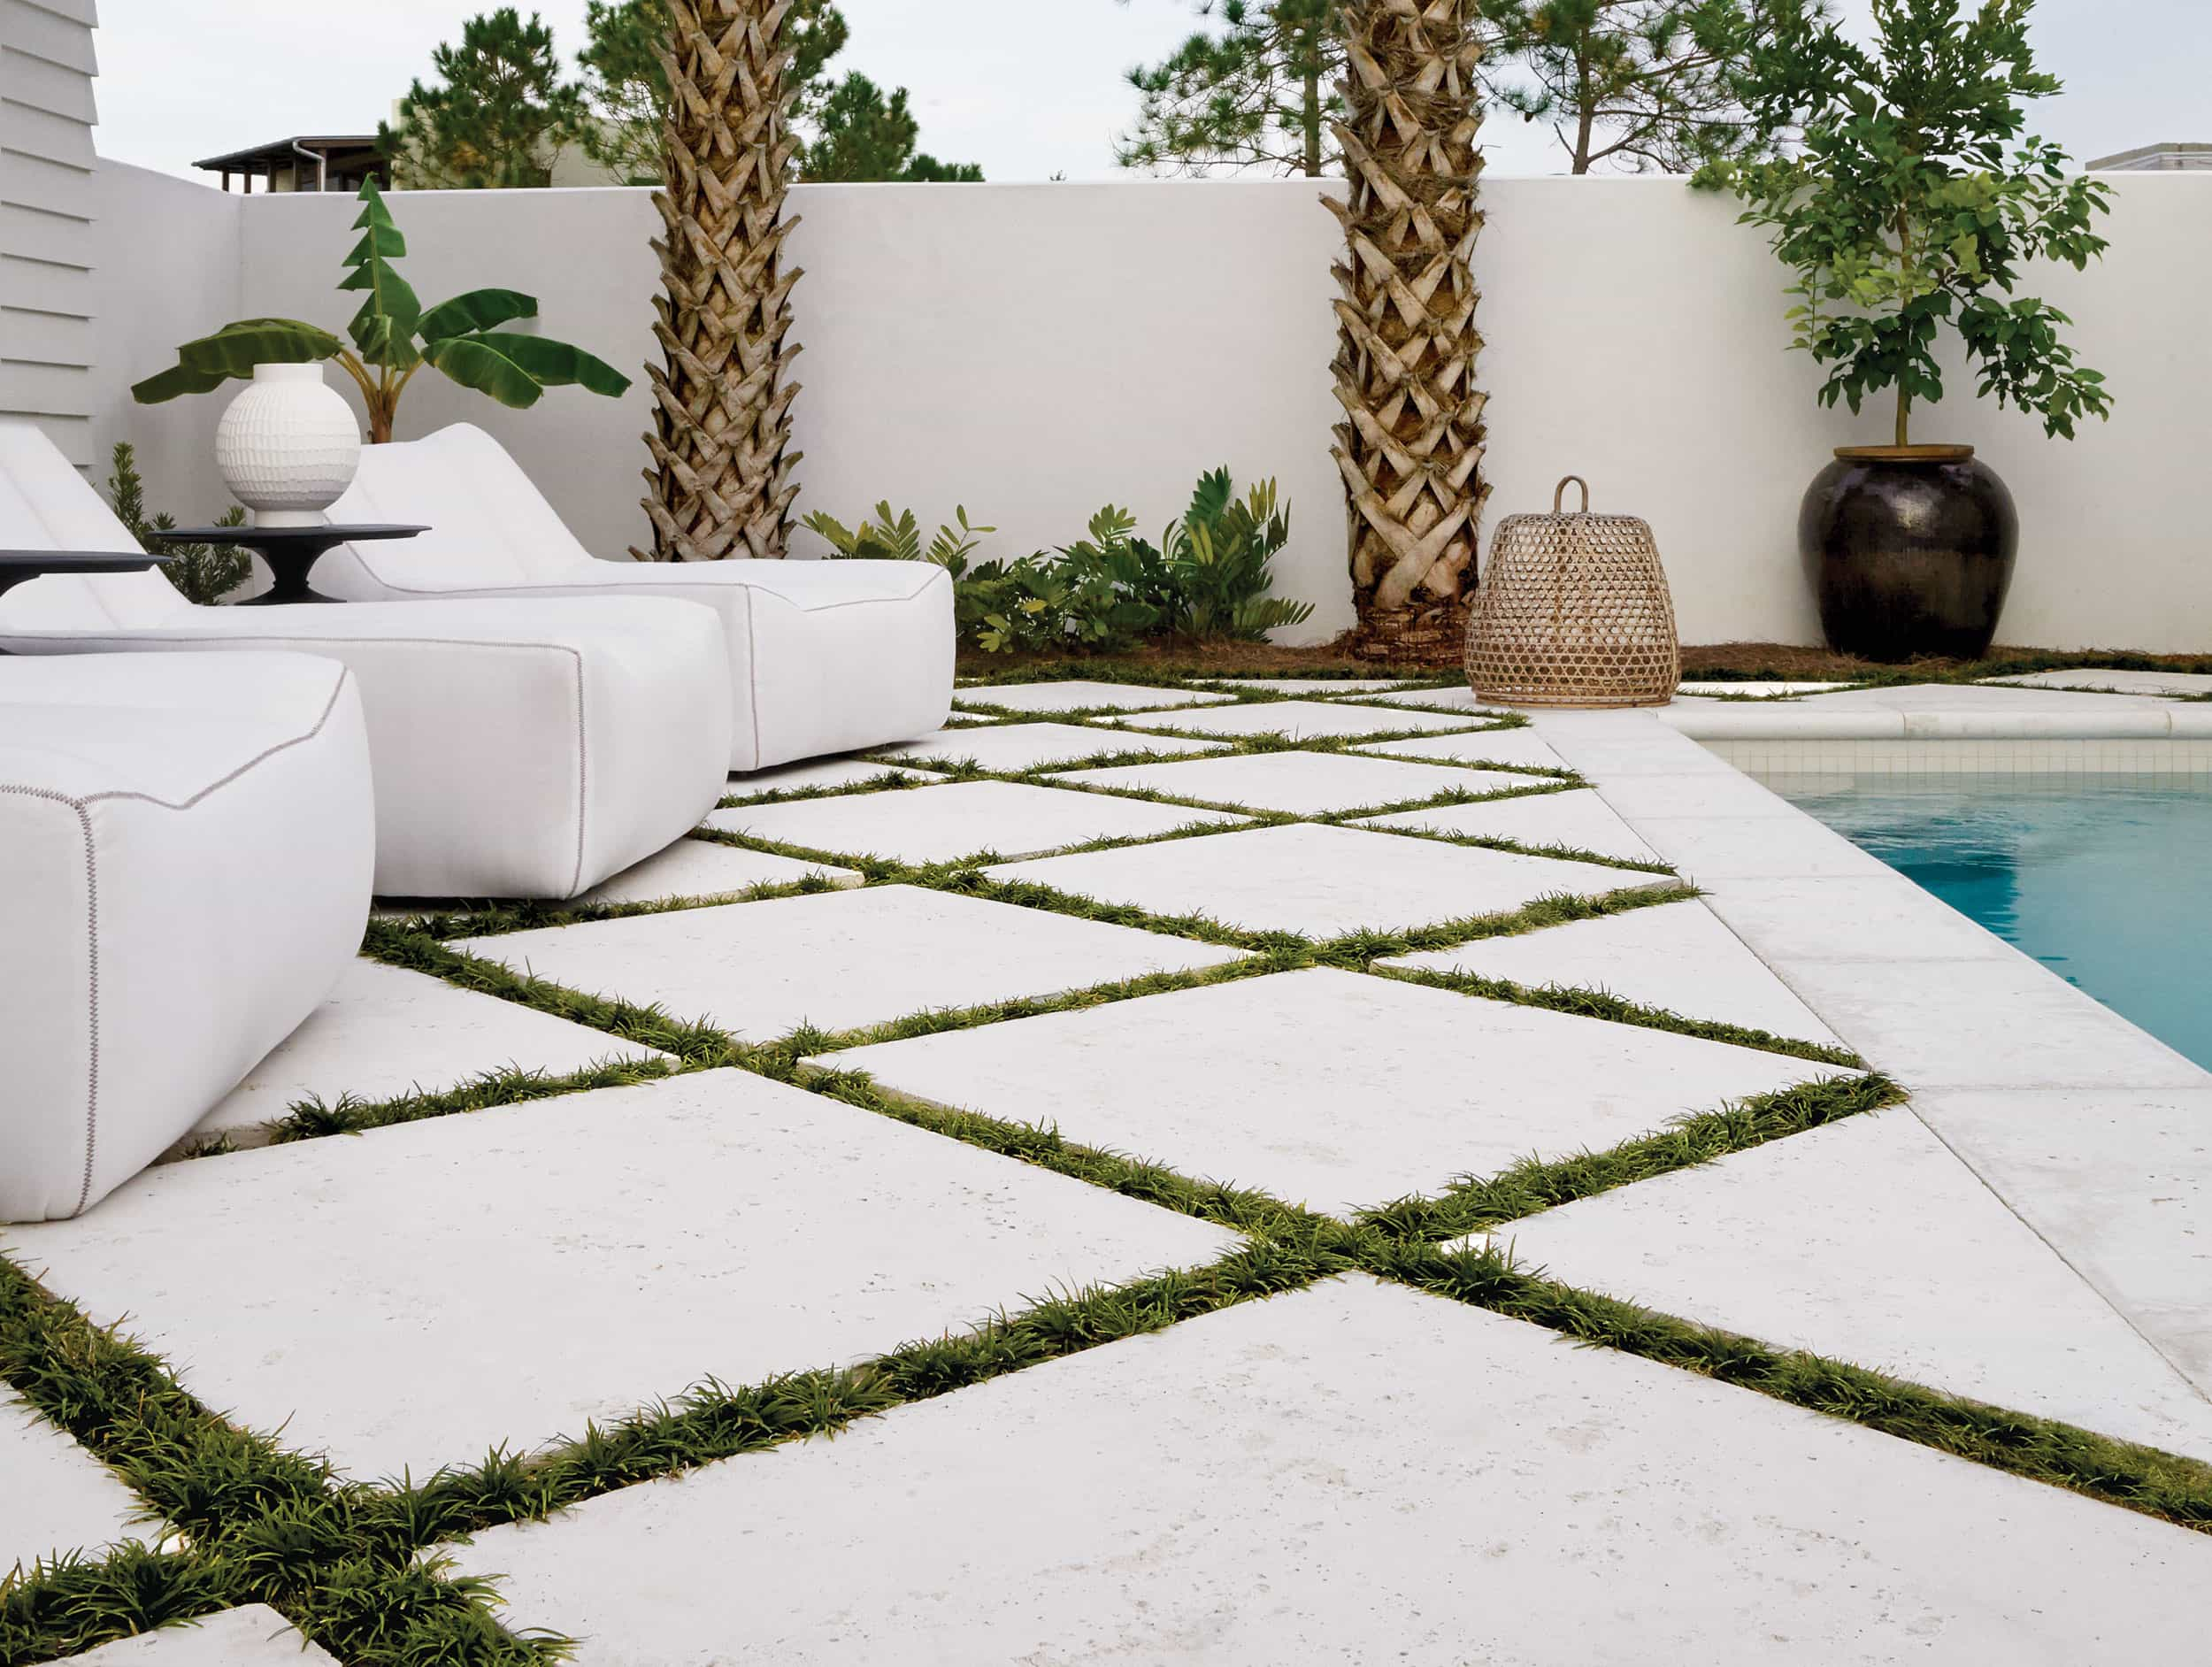 White concrete pavers with grassy joints for pool deck